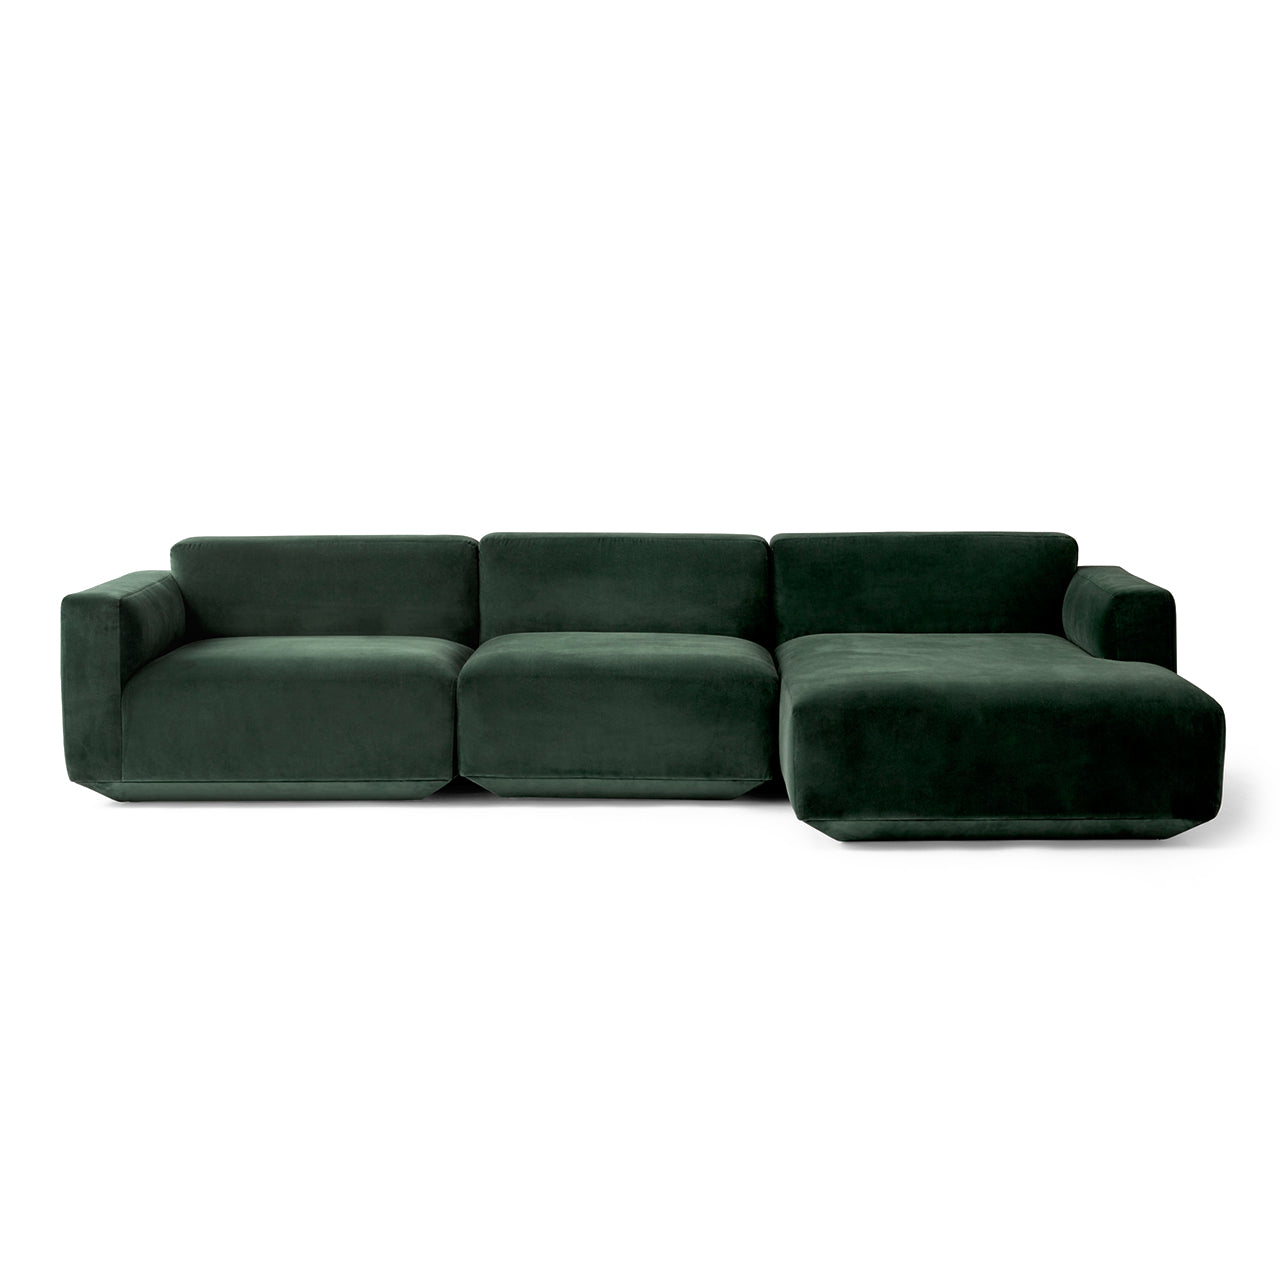 Develius Sofa EV2